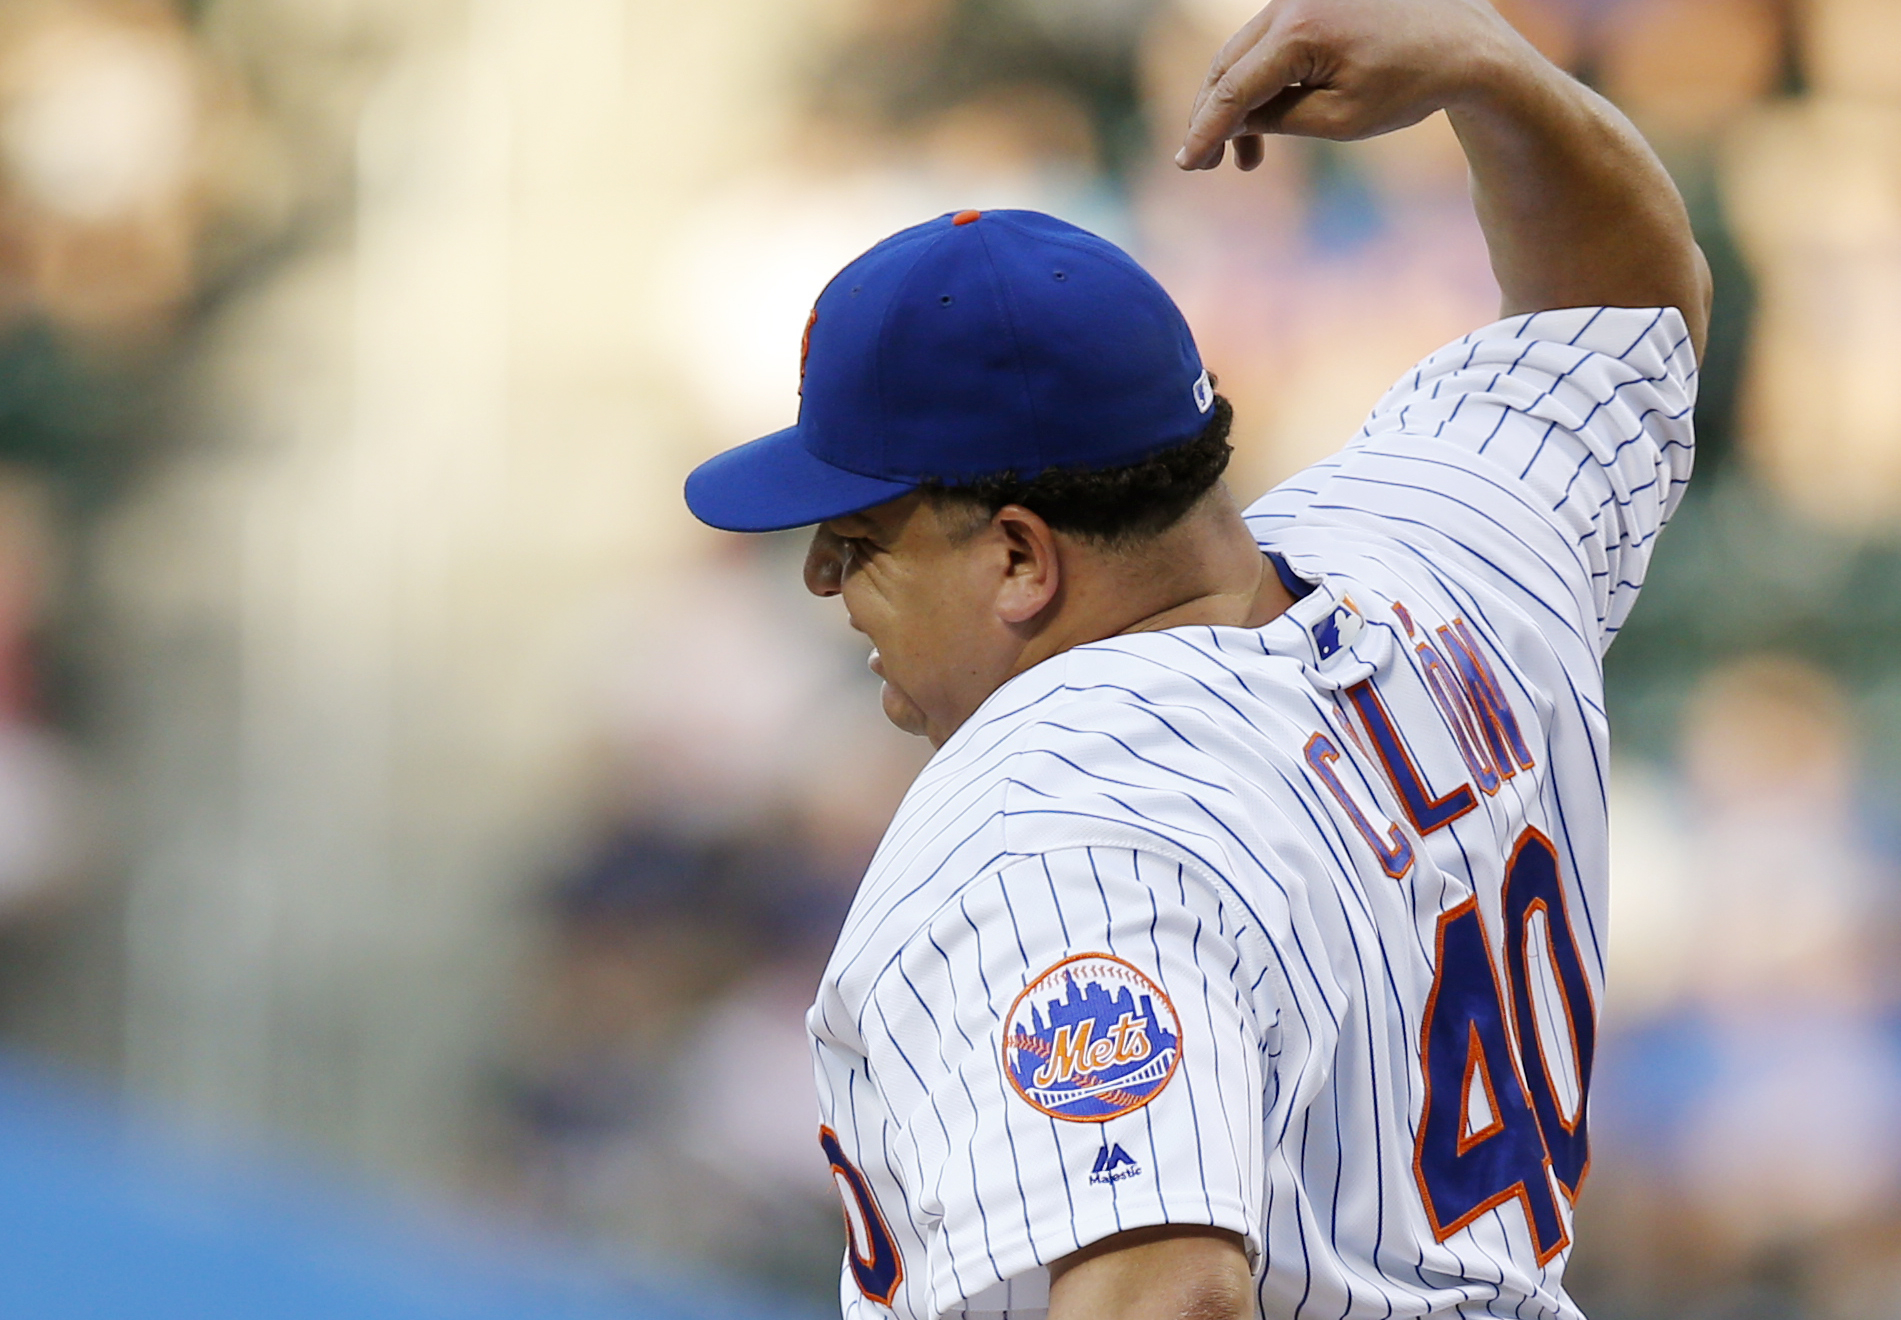 New York Mets starting pitcher Bartolo Colon (40) reacts after he was hit on the hand by Kansas City Royals Whit Merrifield's first-inning, ground ball during a baseball game against the Kansas City Royals, Tuesday, June 21, 2016, in New York. Colon left